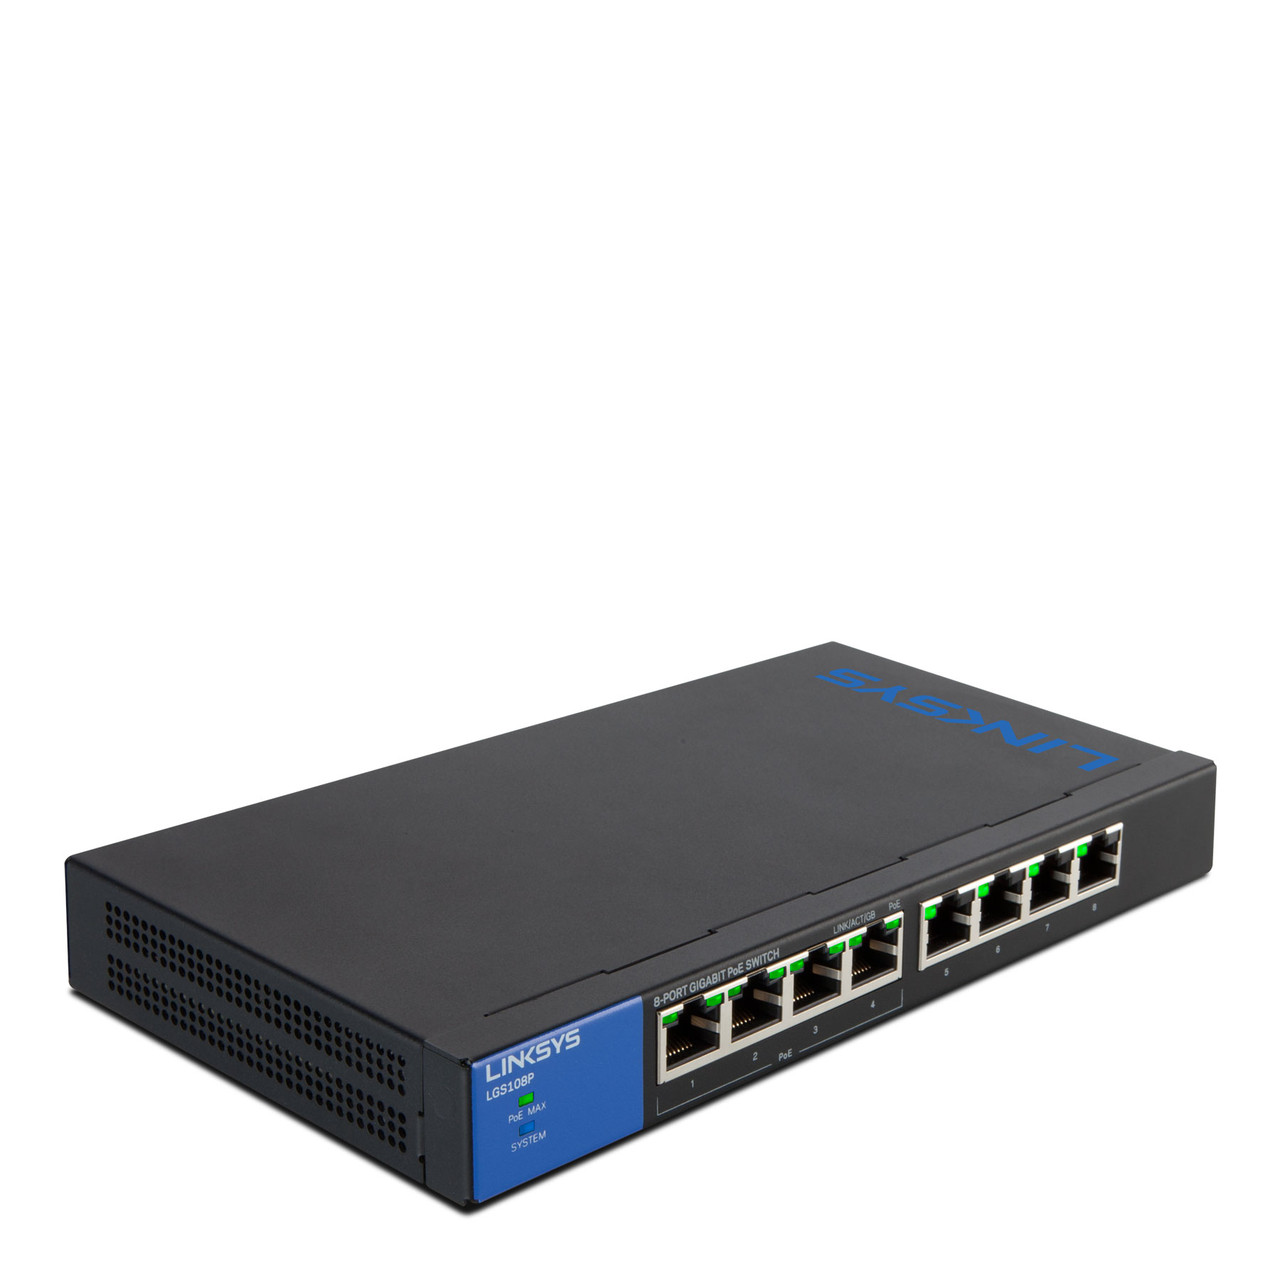 LINKSYS LGS108P-eu SWITCH, POE, GIGABIT, UNMANAGED, 8-PORT